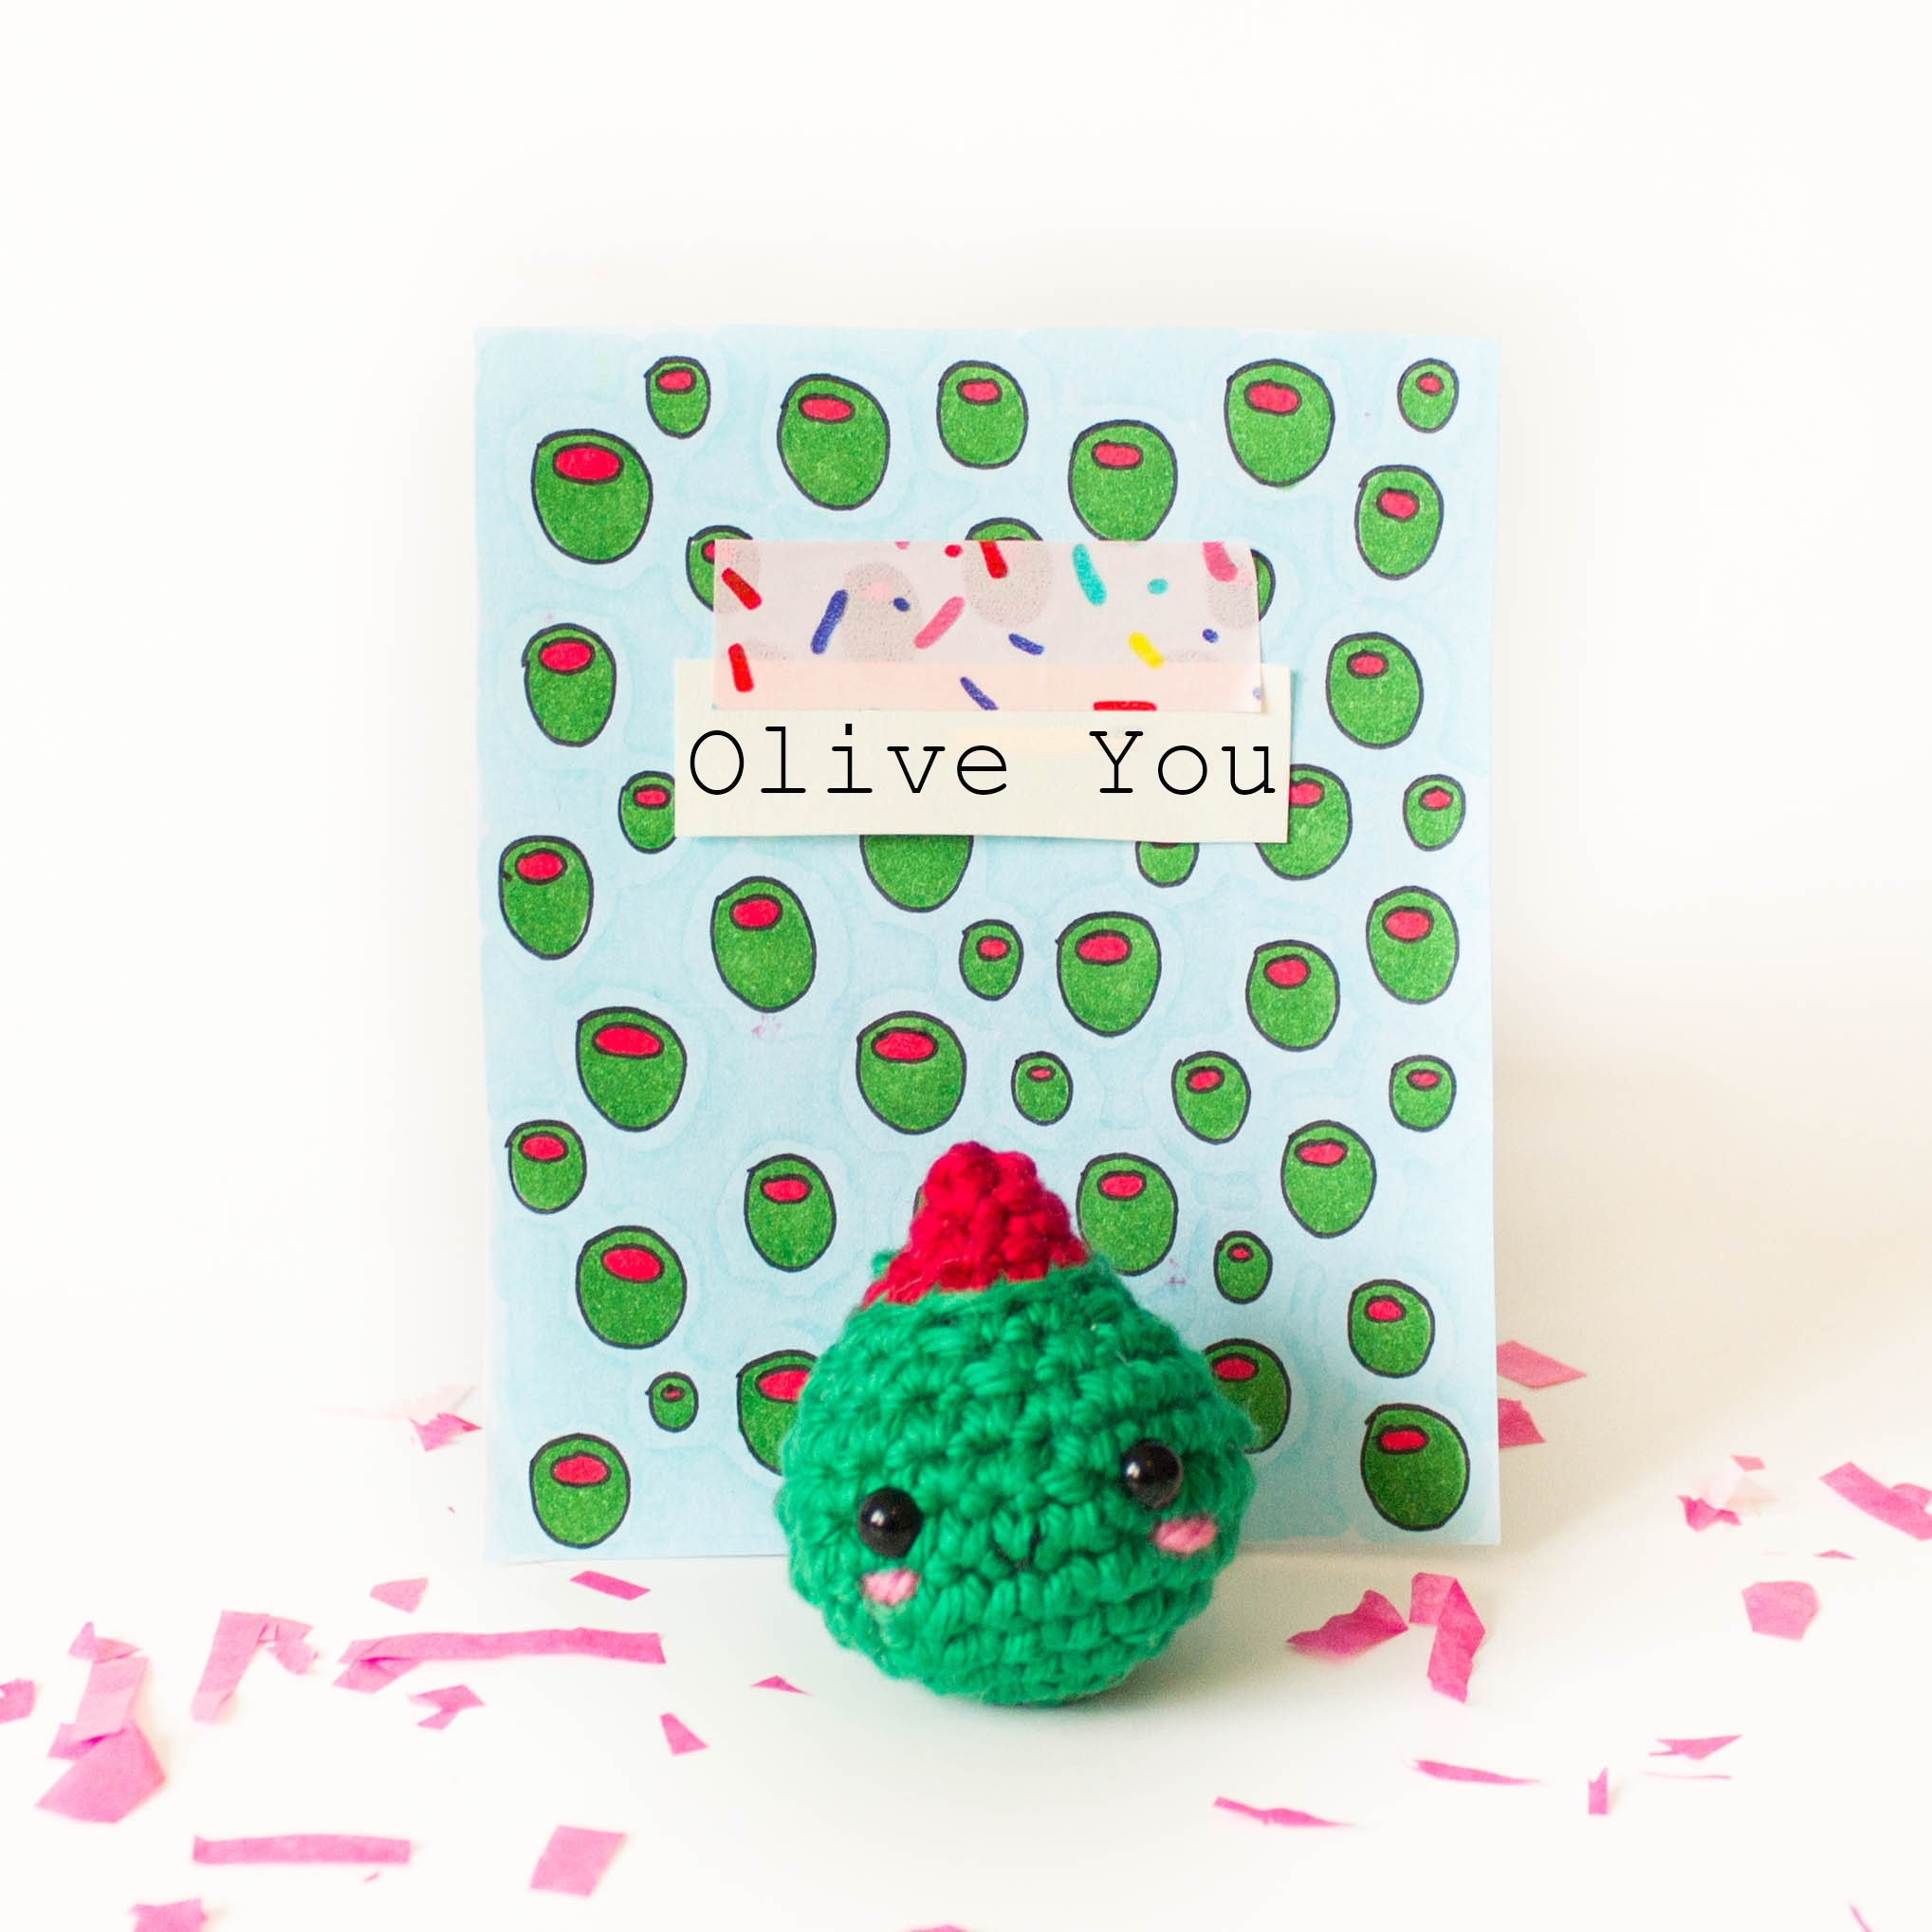 Plush olive olive you easter basket gift personalized plush olive olive you easter basket gift personalized girlfriend gift desk accessory anniversary gift long distnace boyfriend gift negle Gallery